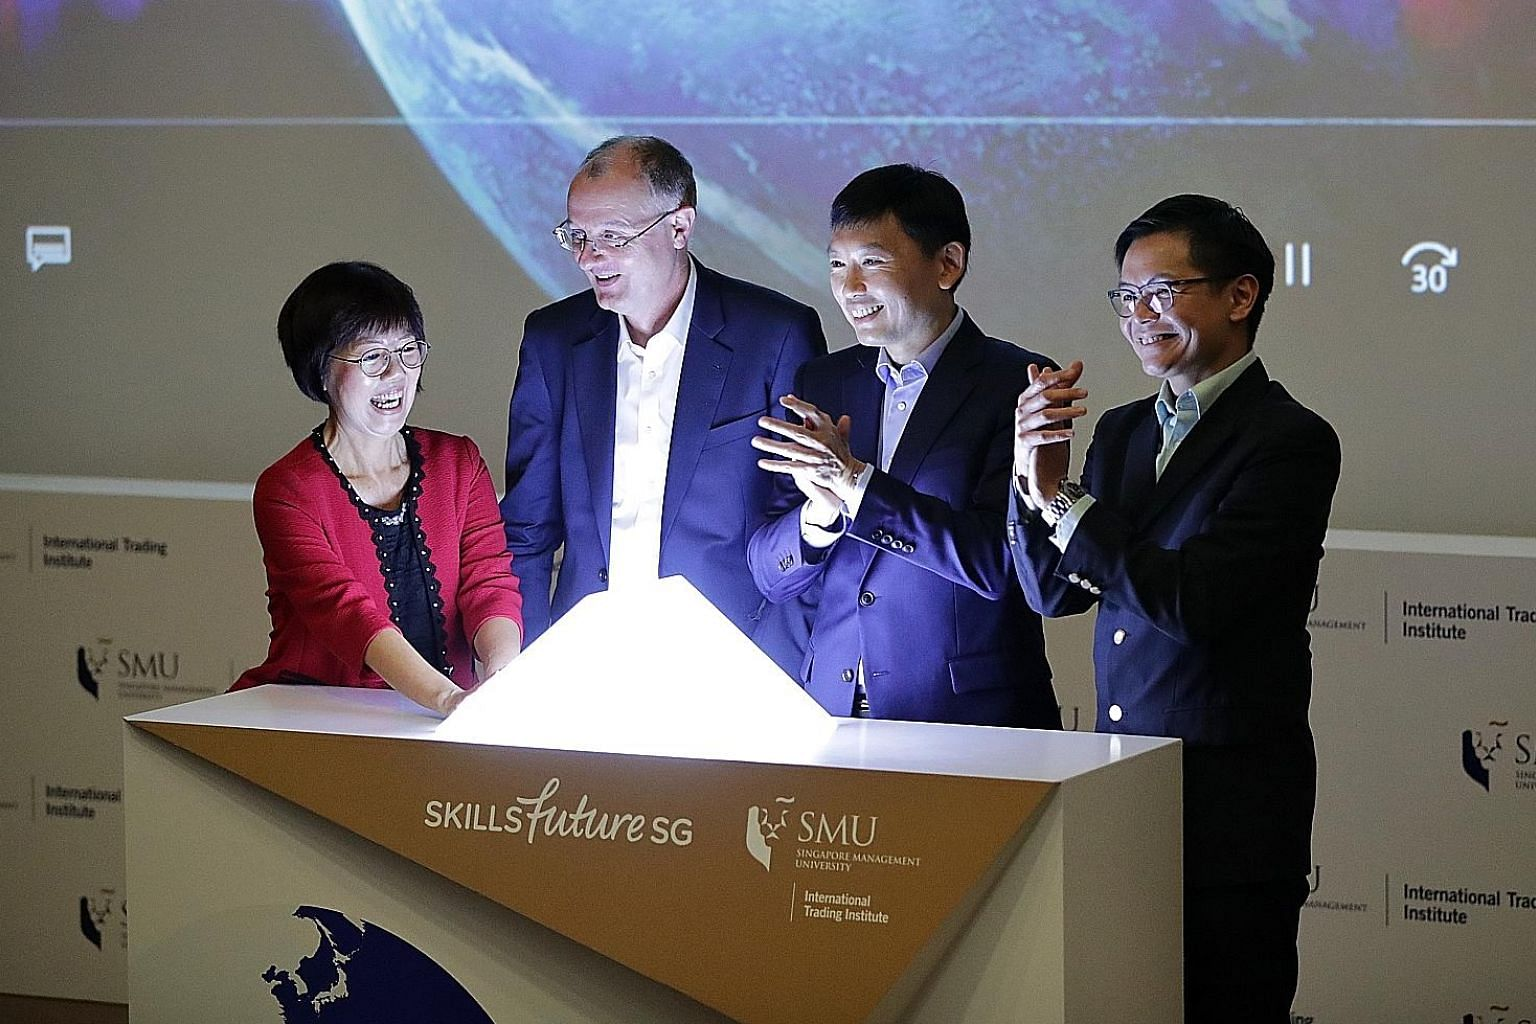 The new iTalent Solutions Map being launched at Singapore Management University yesterday by (from far right) SkillsFuture Singapore chief executive Ng Cher Pong, Senior Minister of State for Trade and Industry and Education Chee Hong Tat, SMU provos